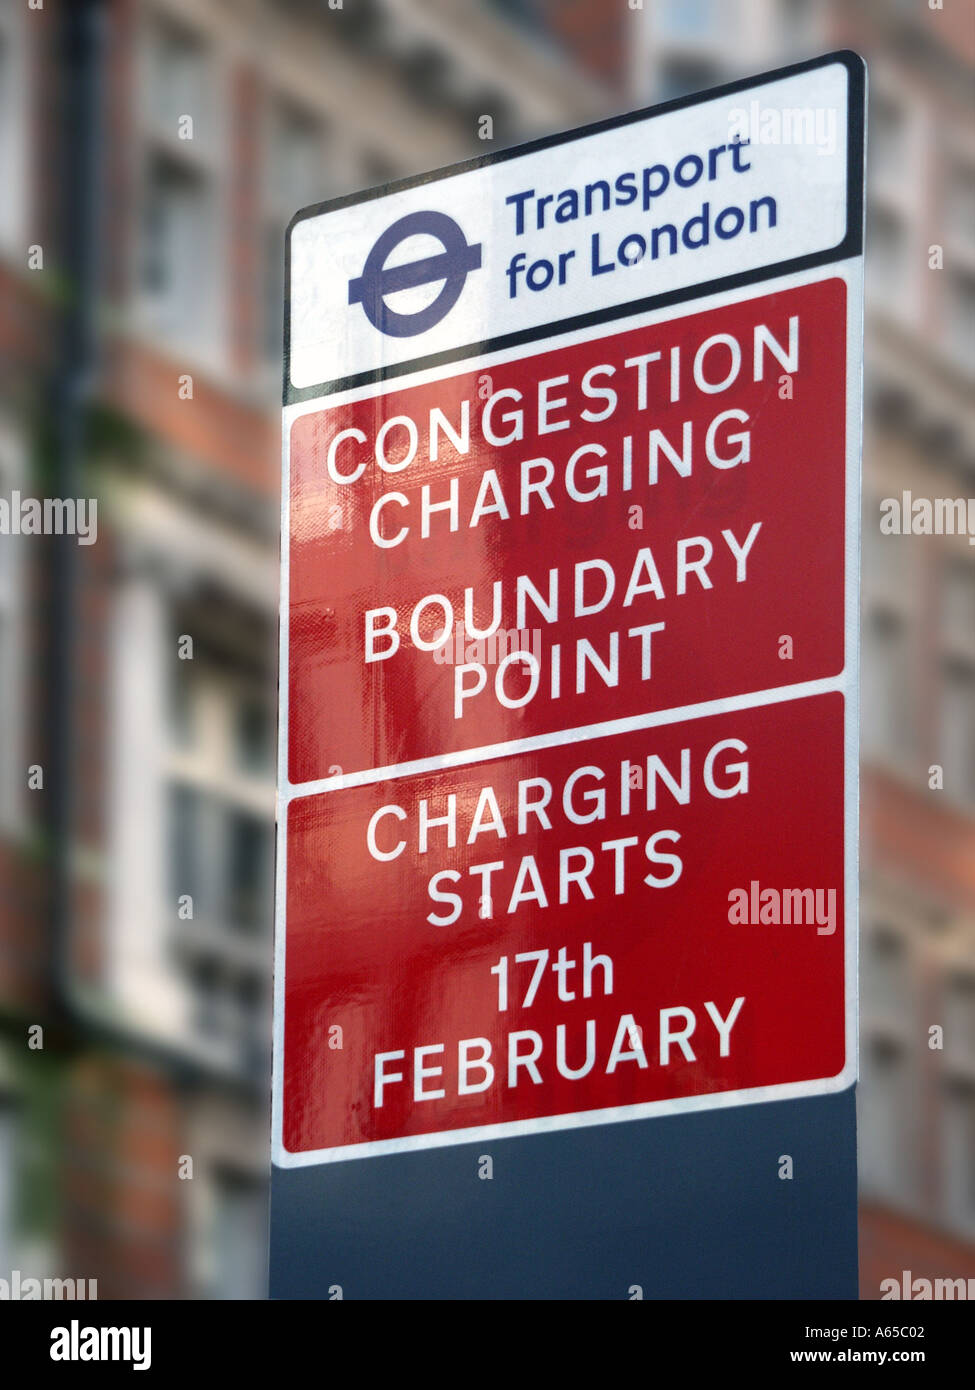 Transport for London Congestion Charging road sign regulating access to roads & streets in central London England UK - Stock Image